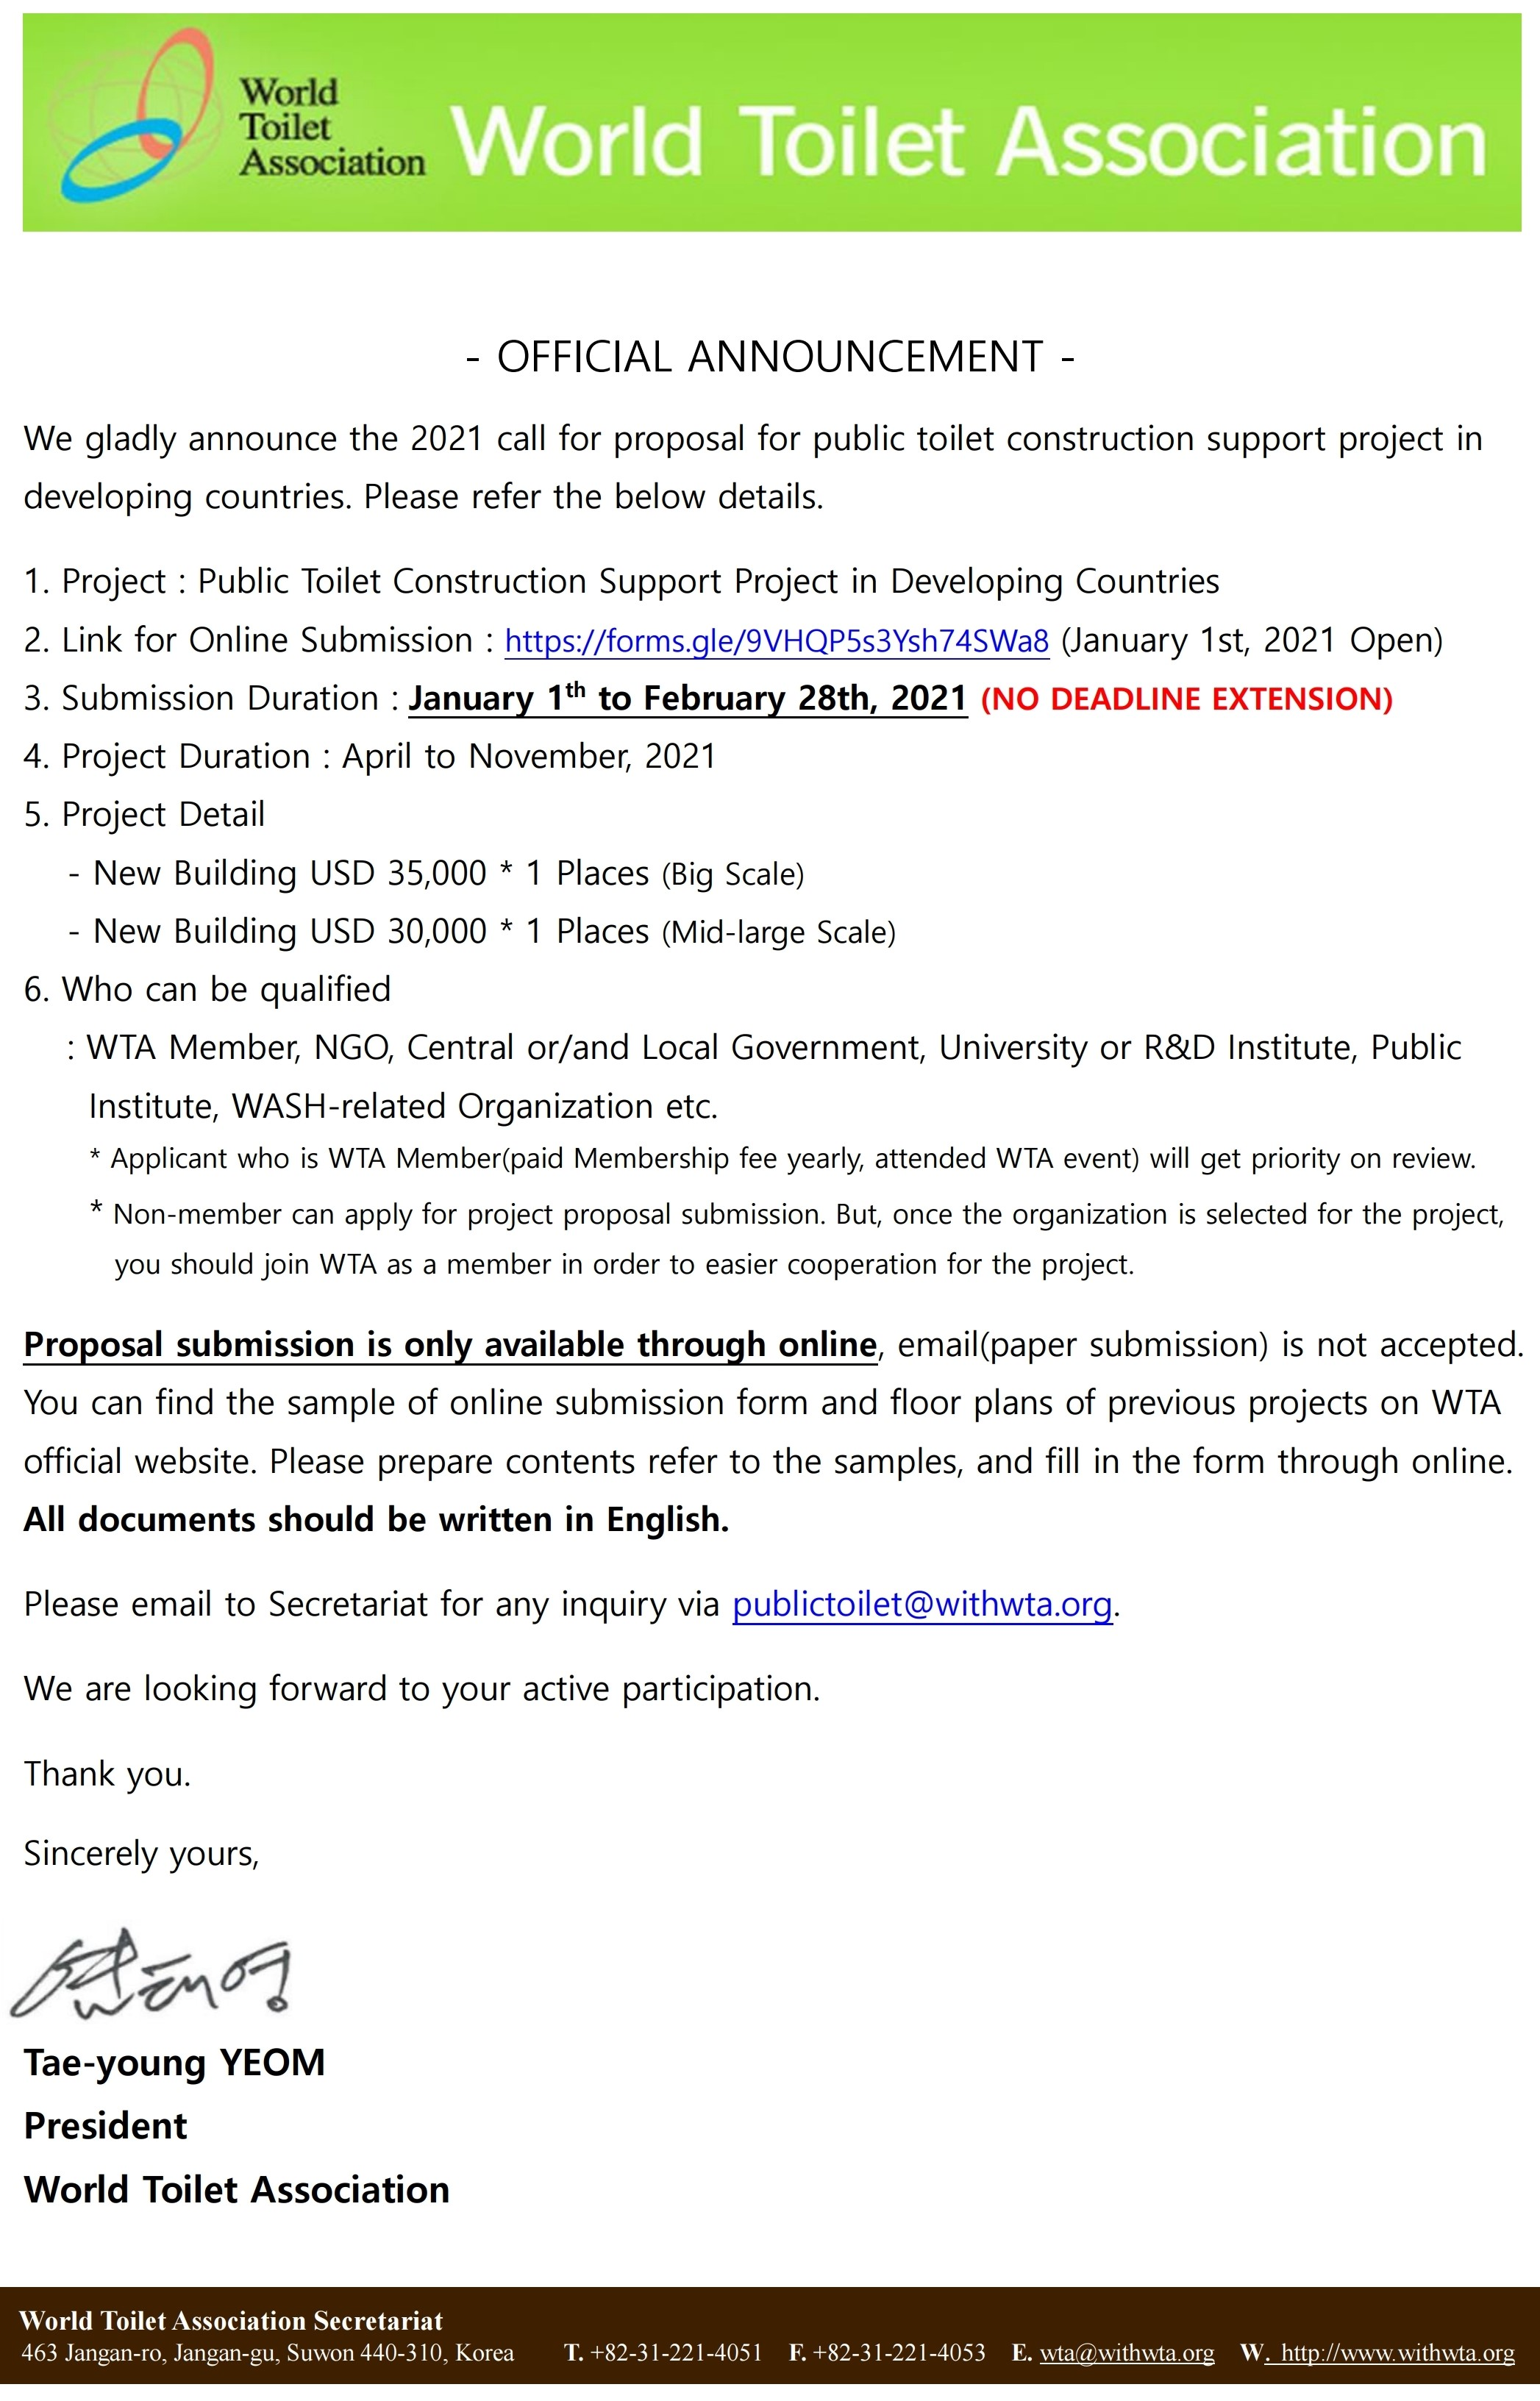 [Official Announcement] Call for 2021 PTCS Project Proposal.pdf_page_11.jpg